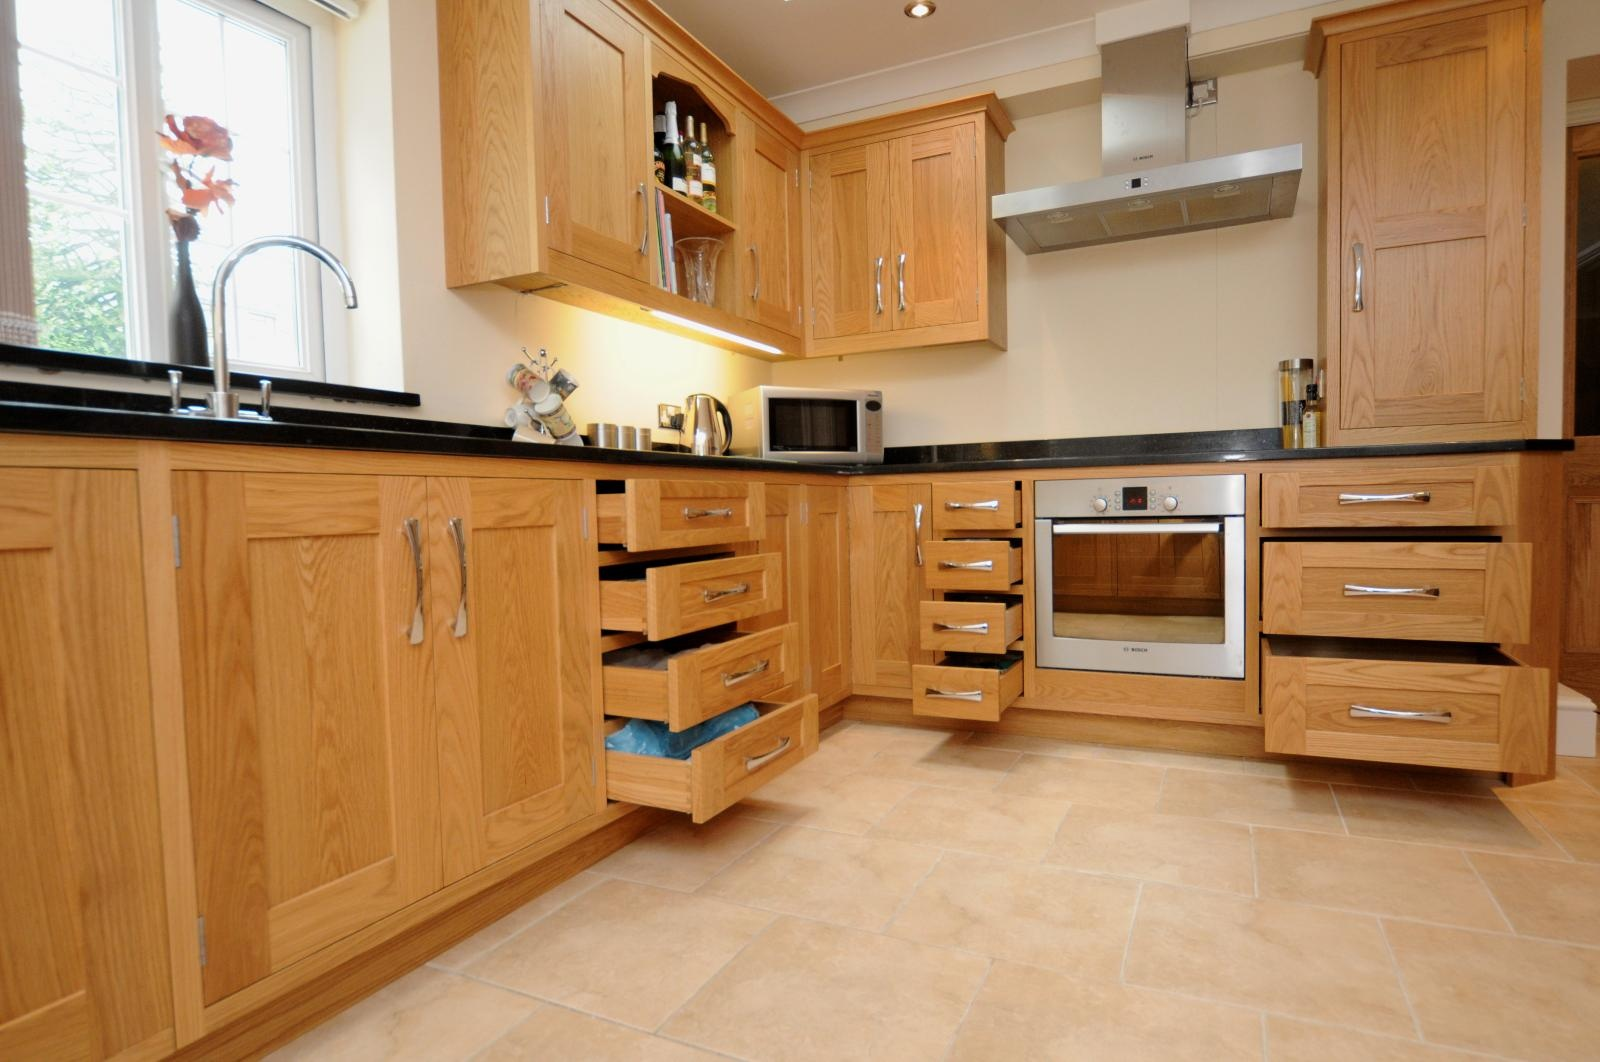 187 Oak Shaker Kitchen St Davids